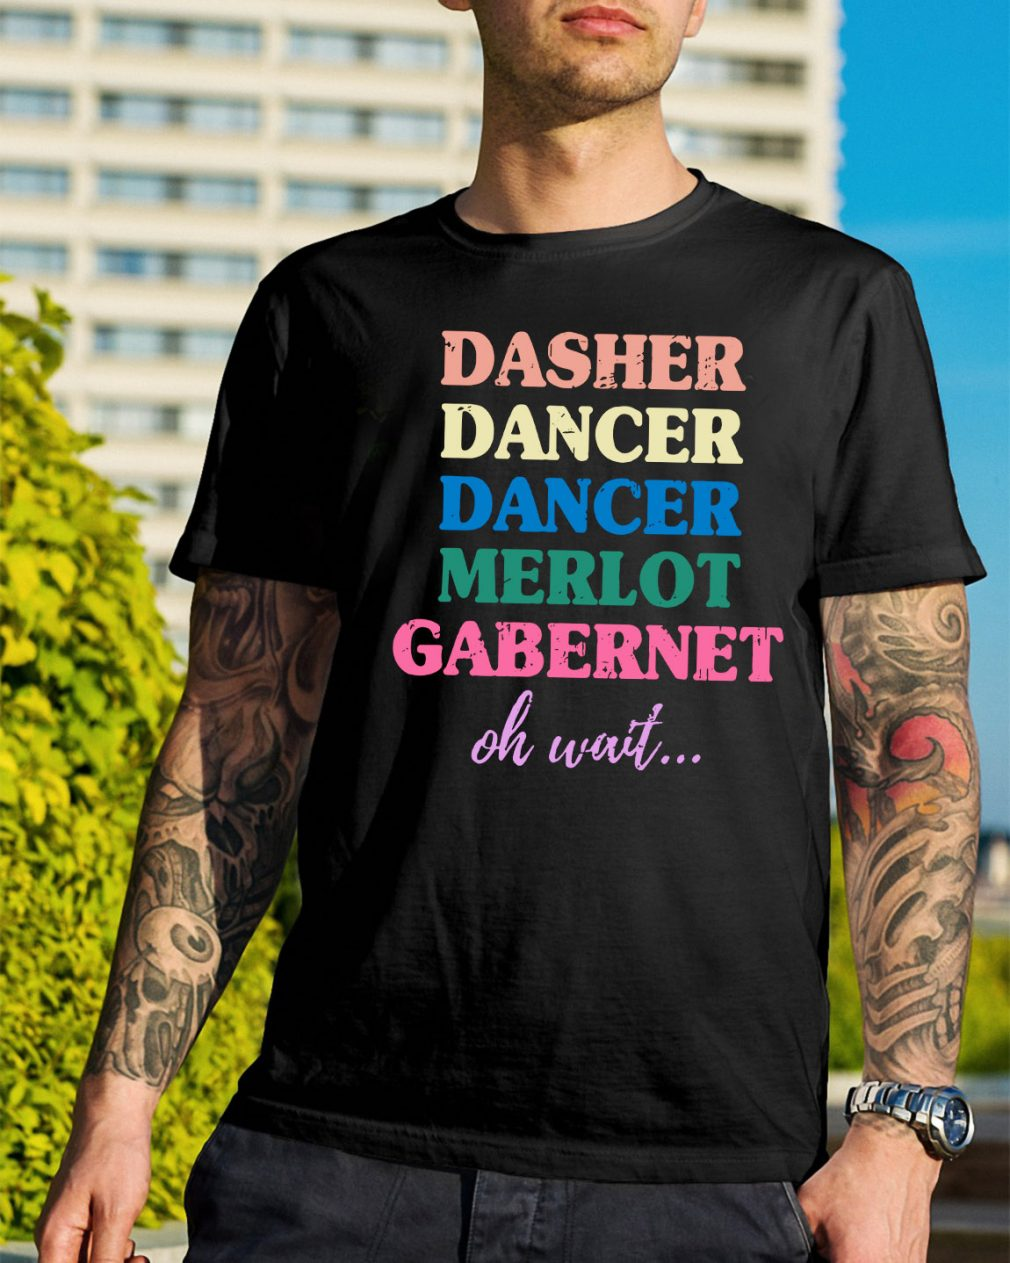 Dasher Dancer Dancer Merlot Gabernet oh wait shirt